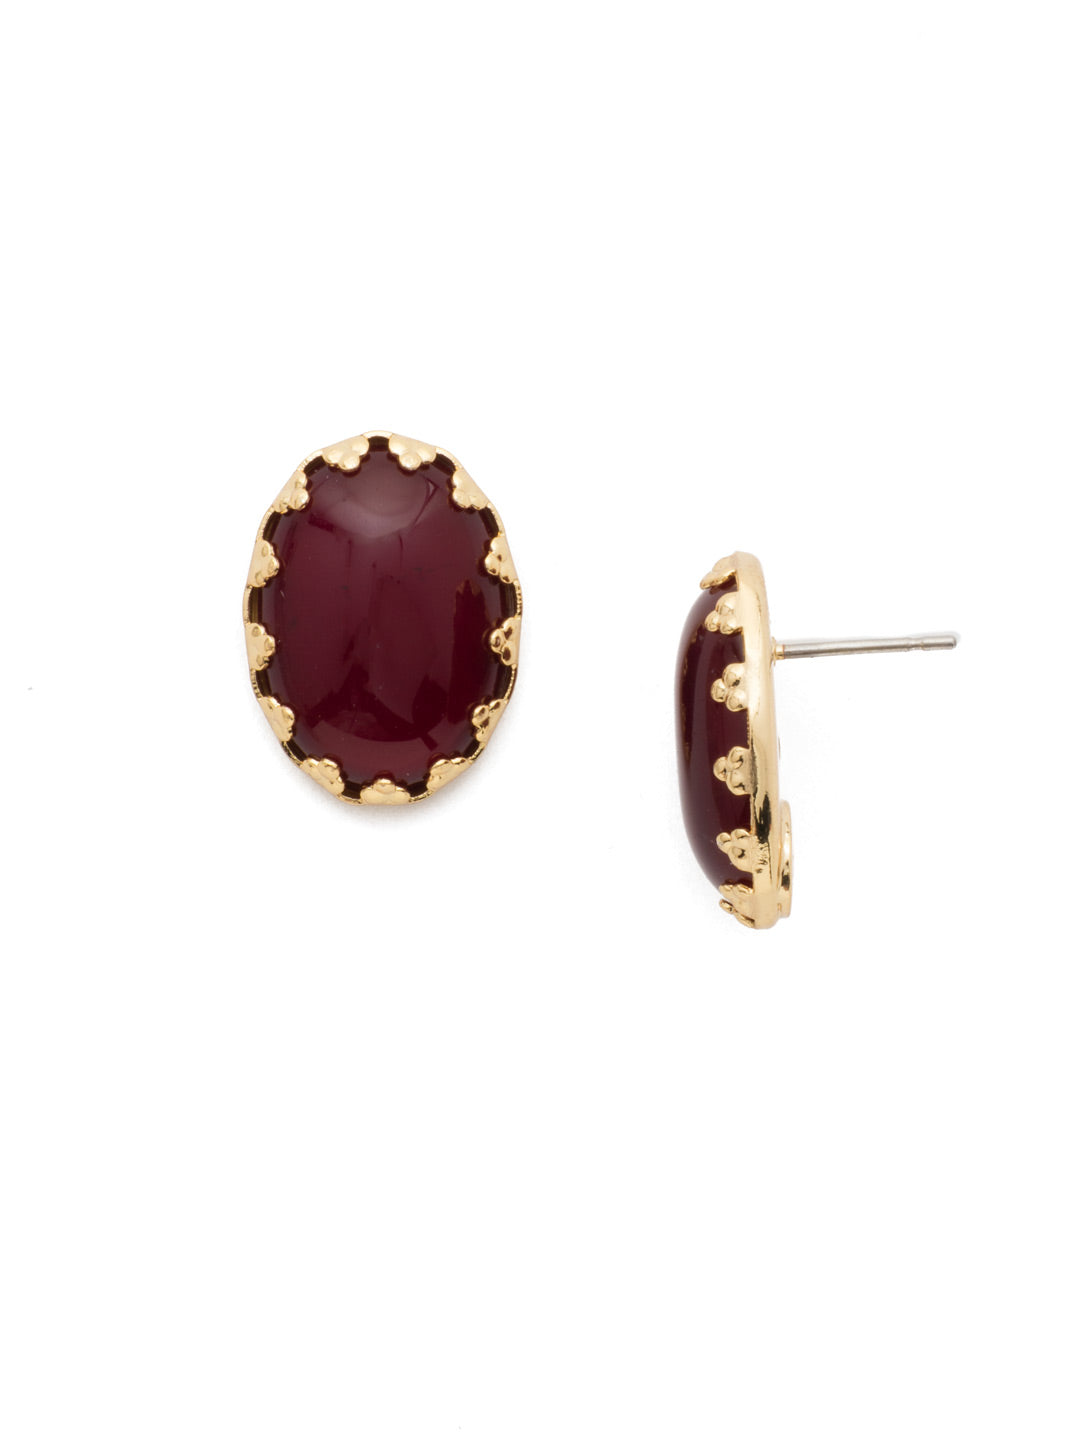 Oval Stud Earrings - ECT43BGSRC